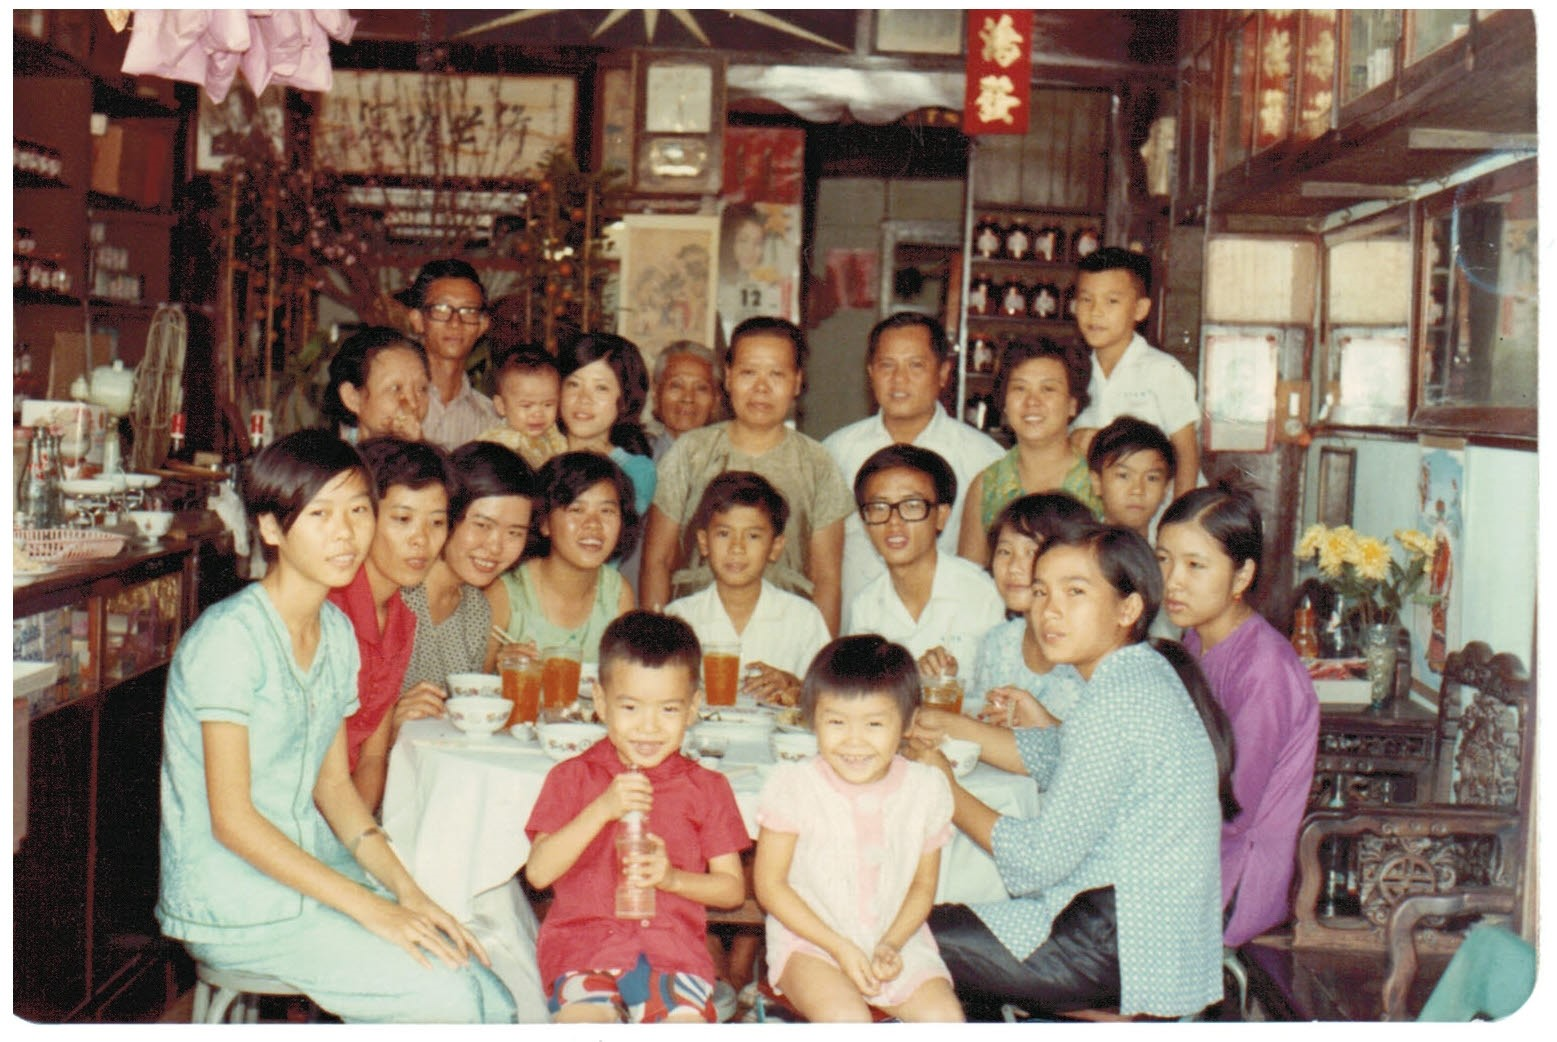 The whole family in the drugstore, about 1973.